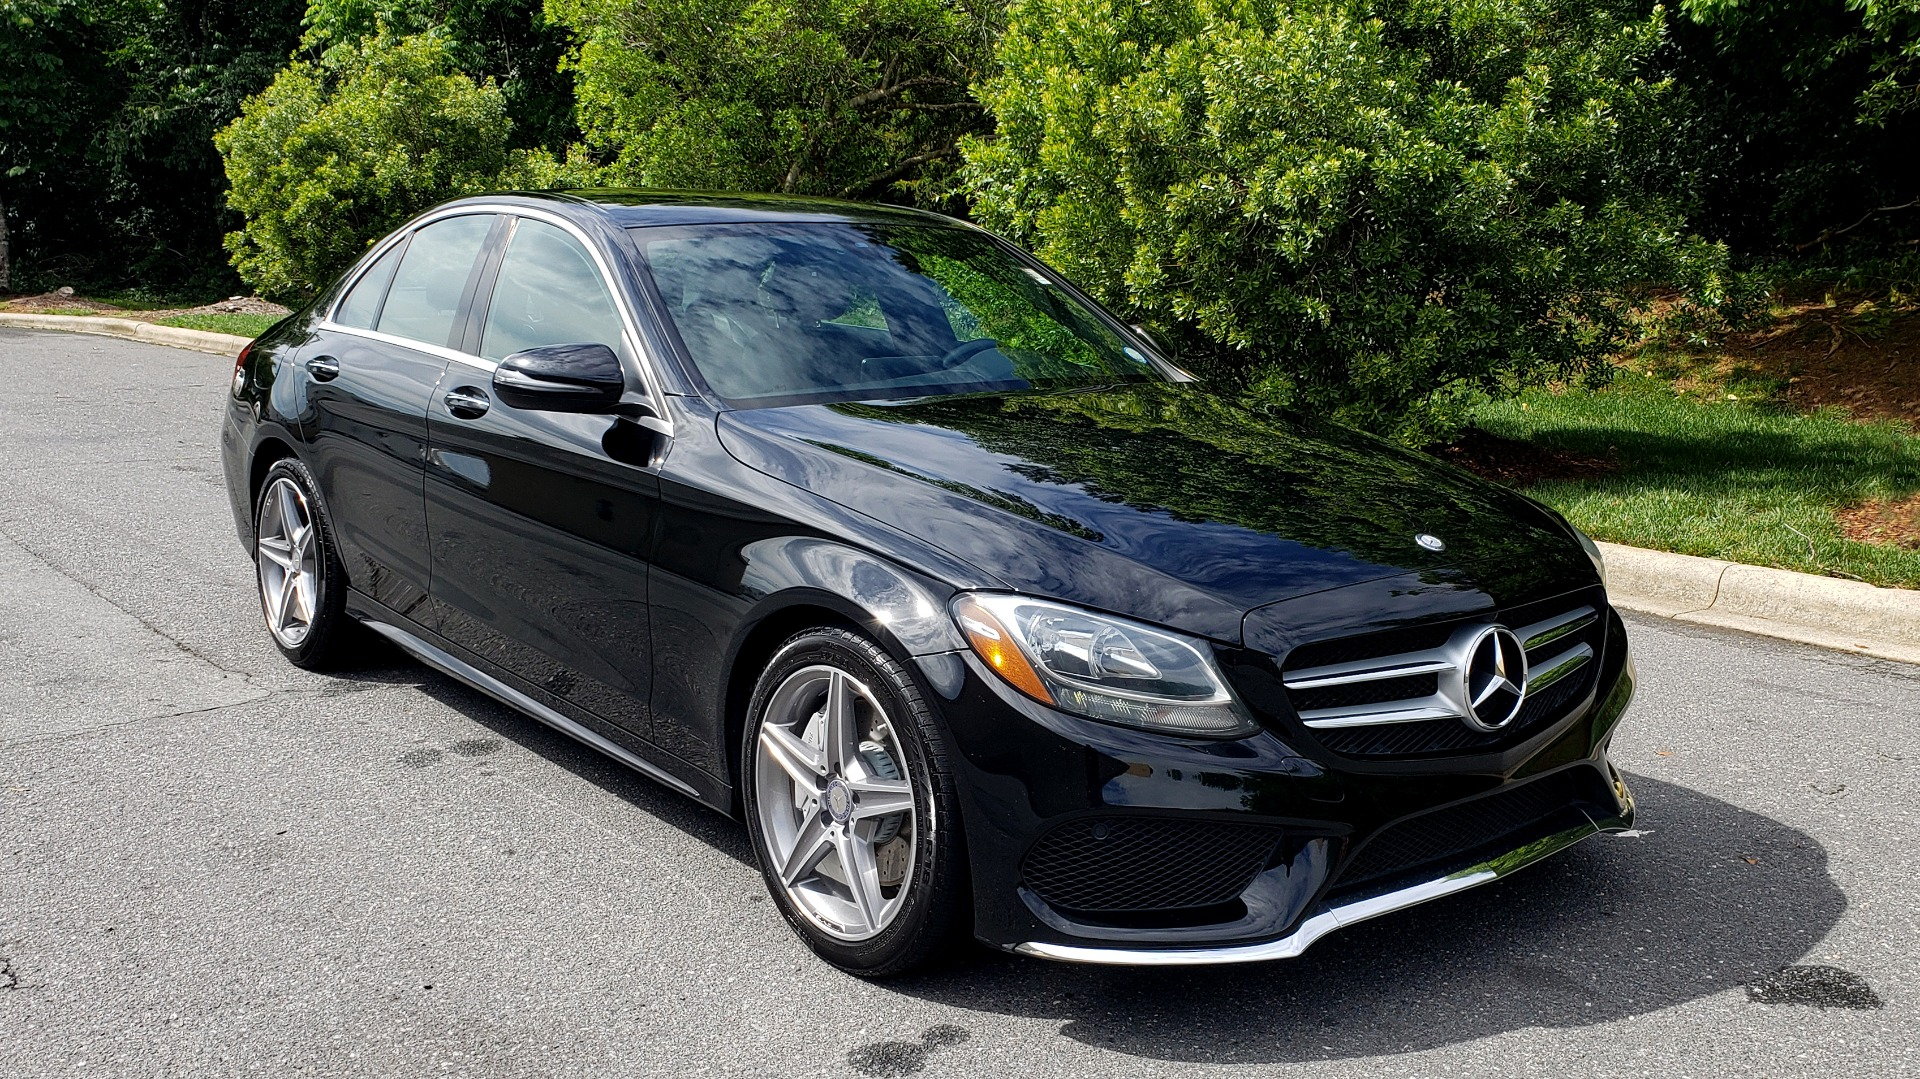 Used 2016 Mercedes-Benz C-CLASS C300 SPORT / PREM PKG / NAV / PANO-ROOF / REARVIEW / KEYLESS-GO for sale Sold at Formula Imports in Charlotte NC 28227 11